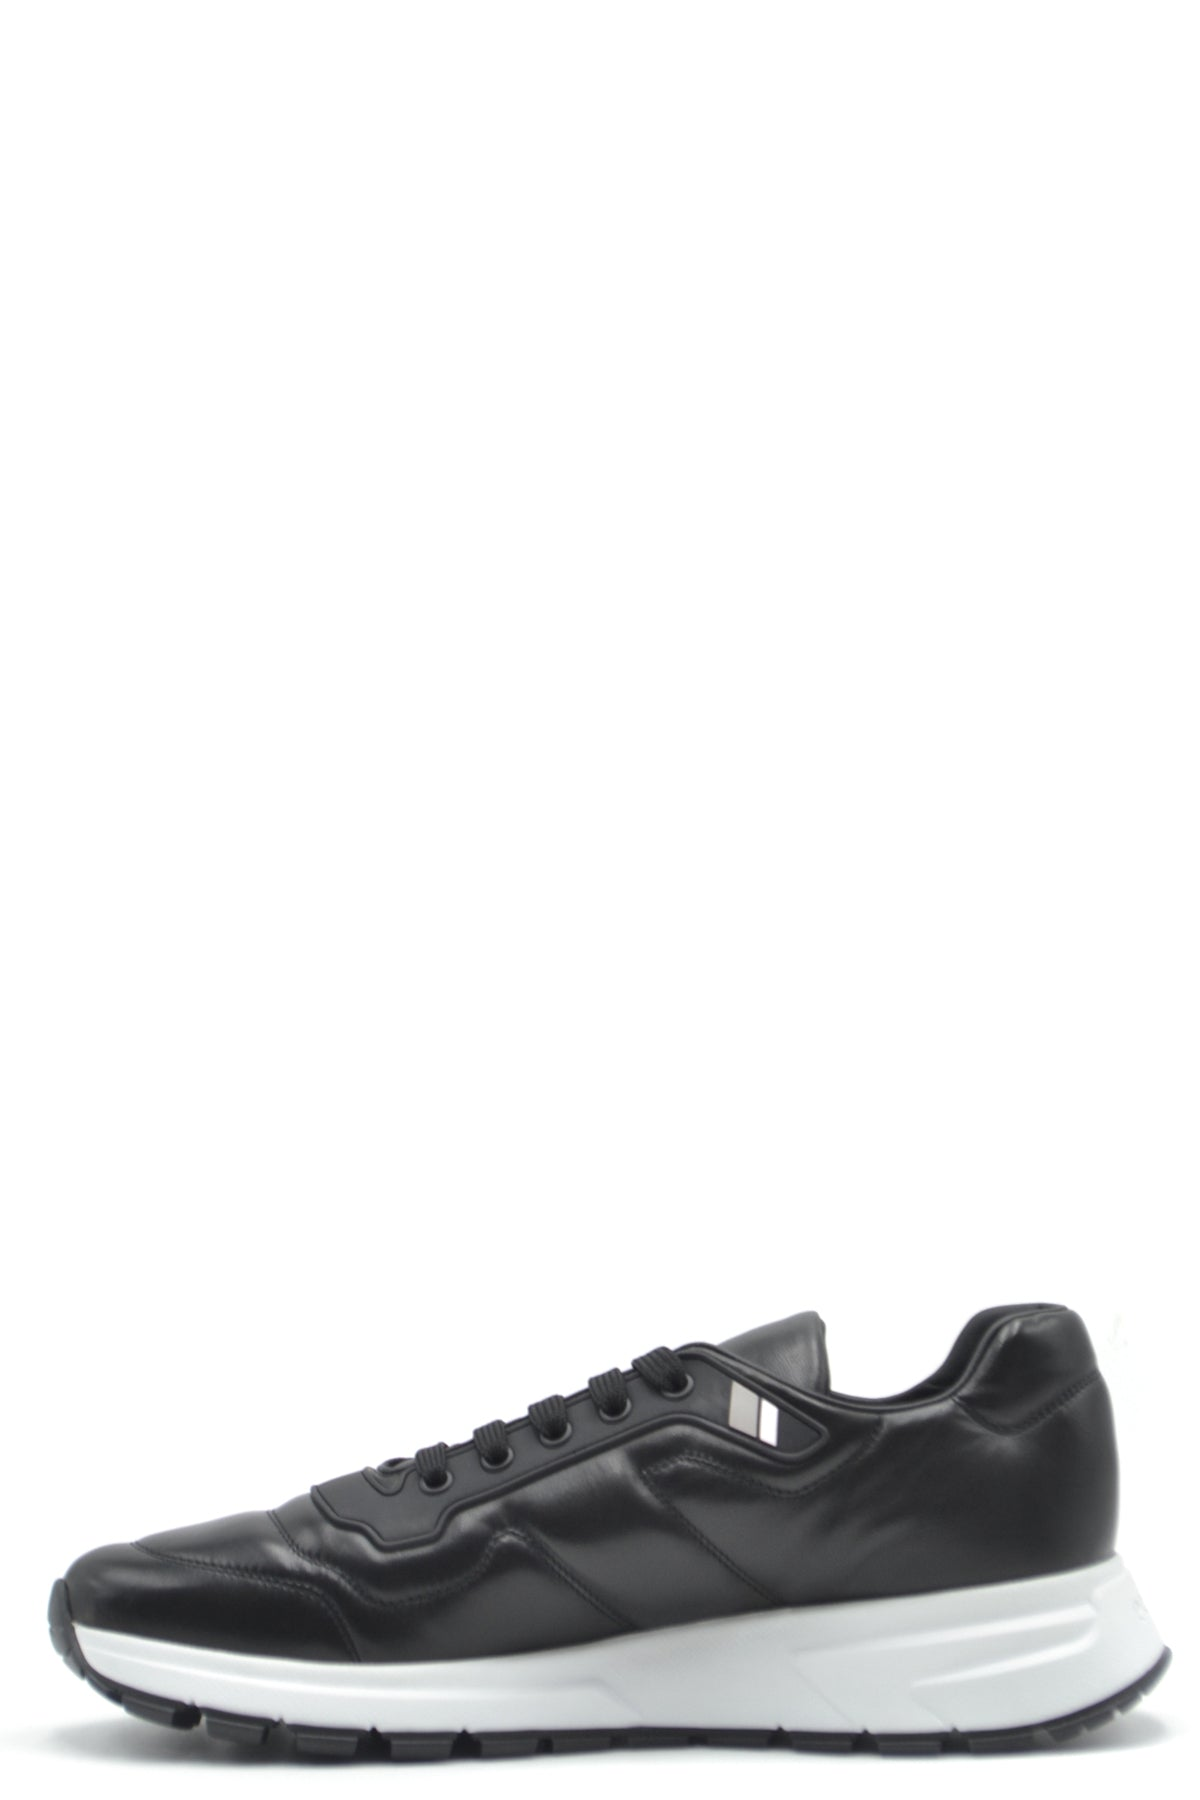 Shoes Prada-Sports & Entertainment - Sneakers-Product Details Terms: New With LabelMain Color: BlackType Of Accessory: ShoesSeason: Fall / WinterMade In: ItalyGender: ManSize: UkComposition: Leather 100%Year: 2020Manufacturer Part Number: 4E3433 072 F0967-Keyomi-Sook